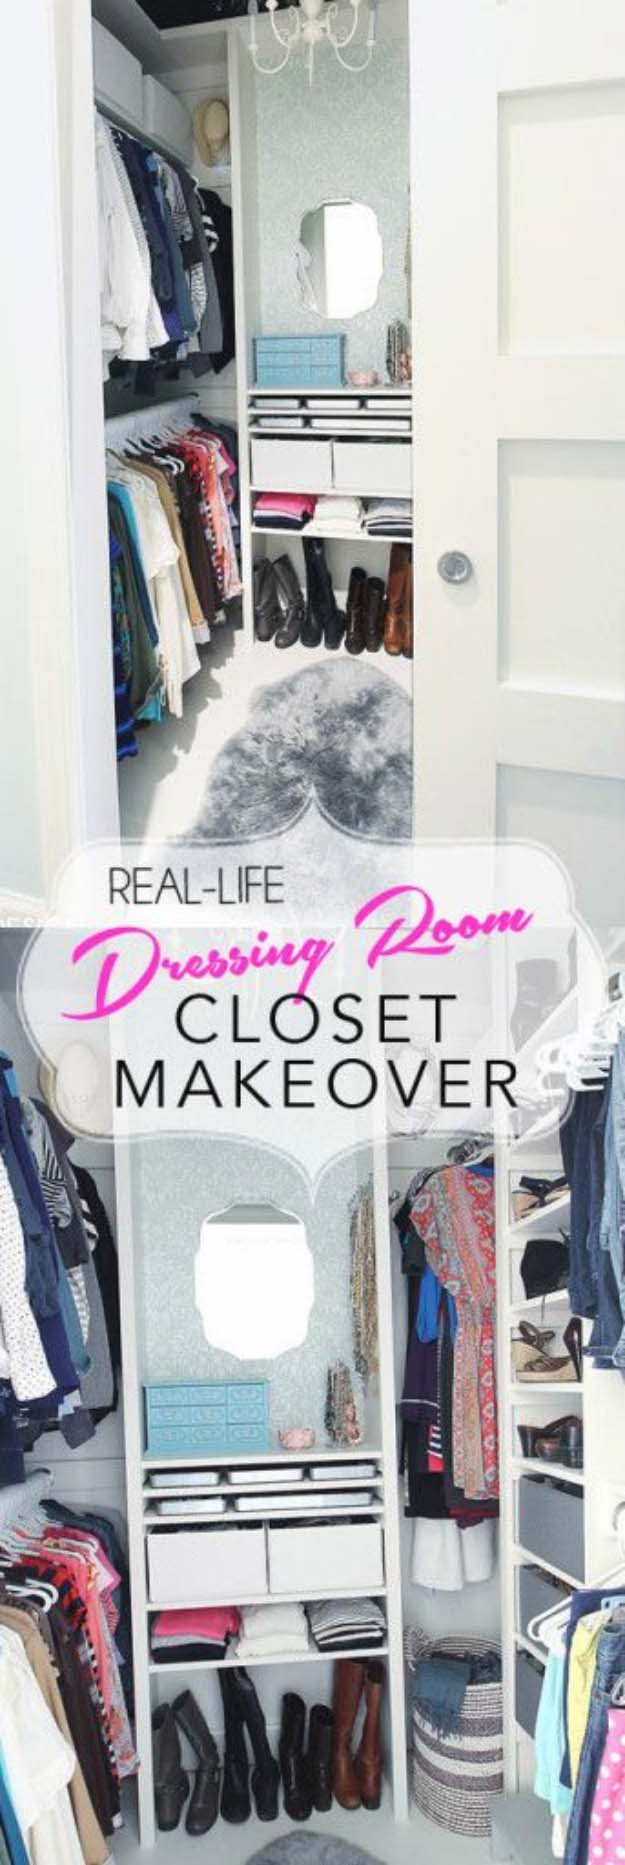 DIY Ways To Organize Your Closet  15 Smart Ways To Organize Your Closet With Practical Ideas